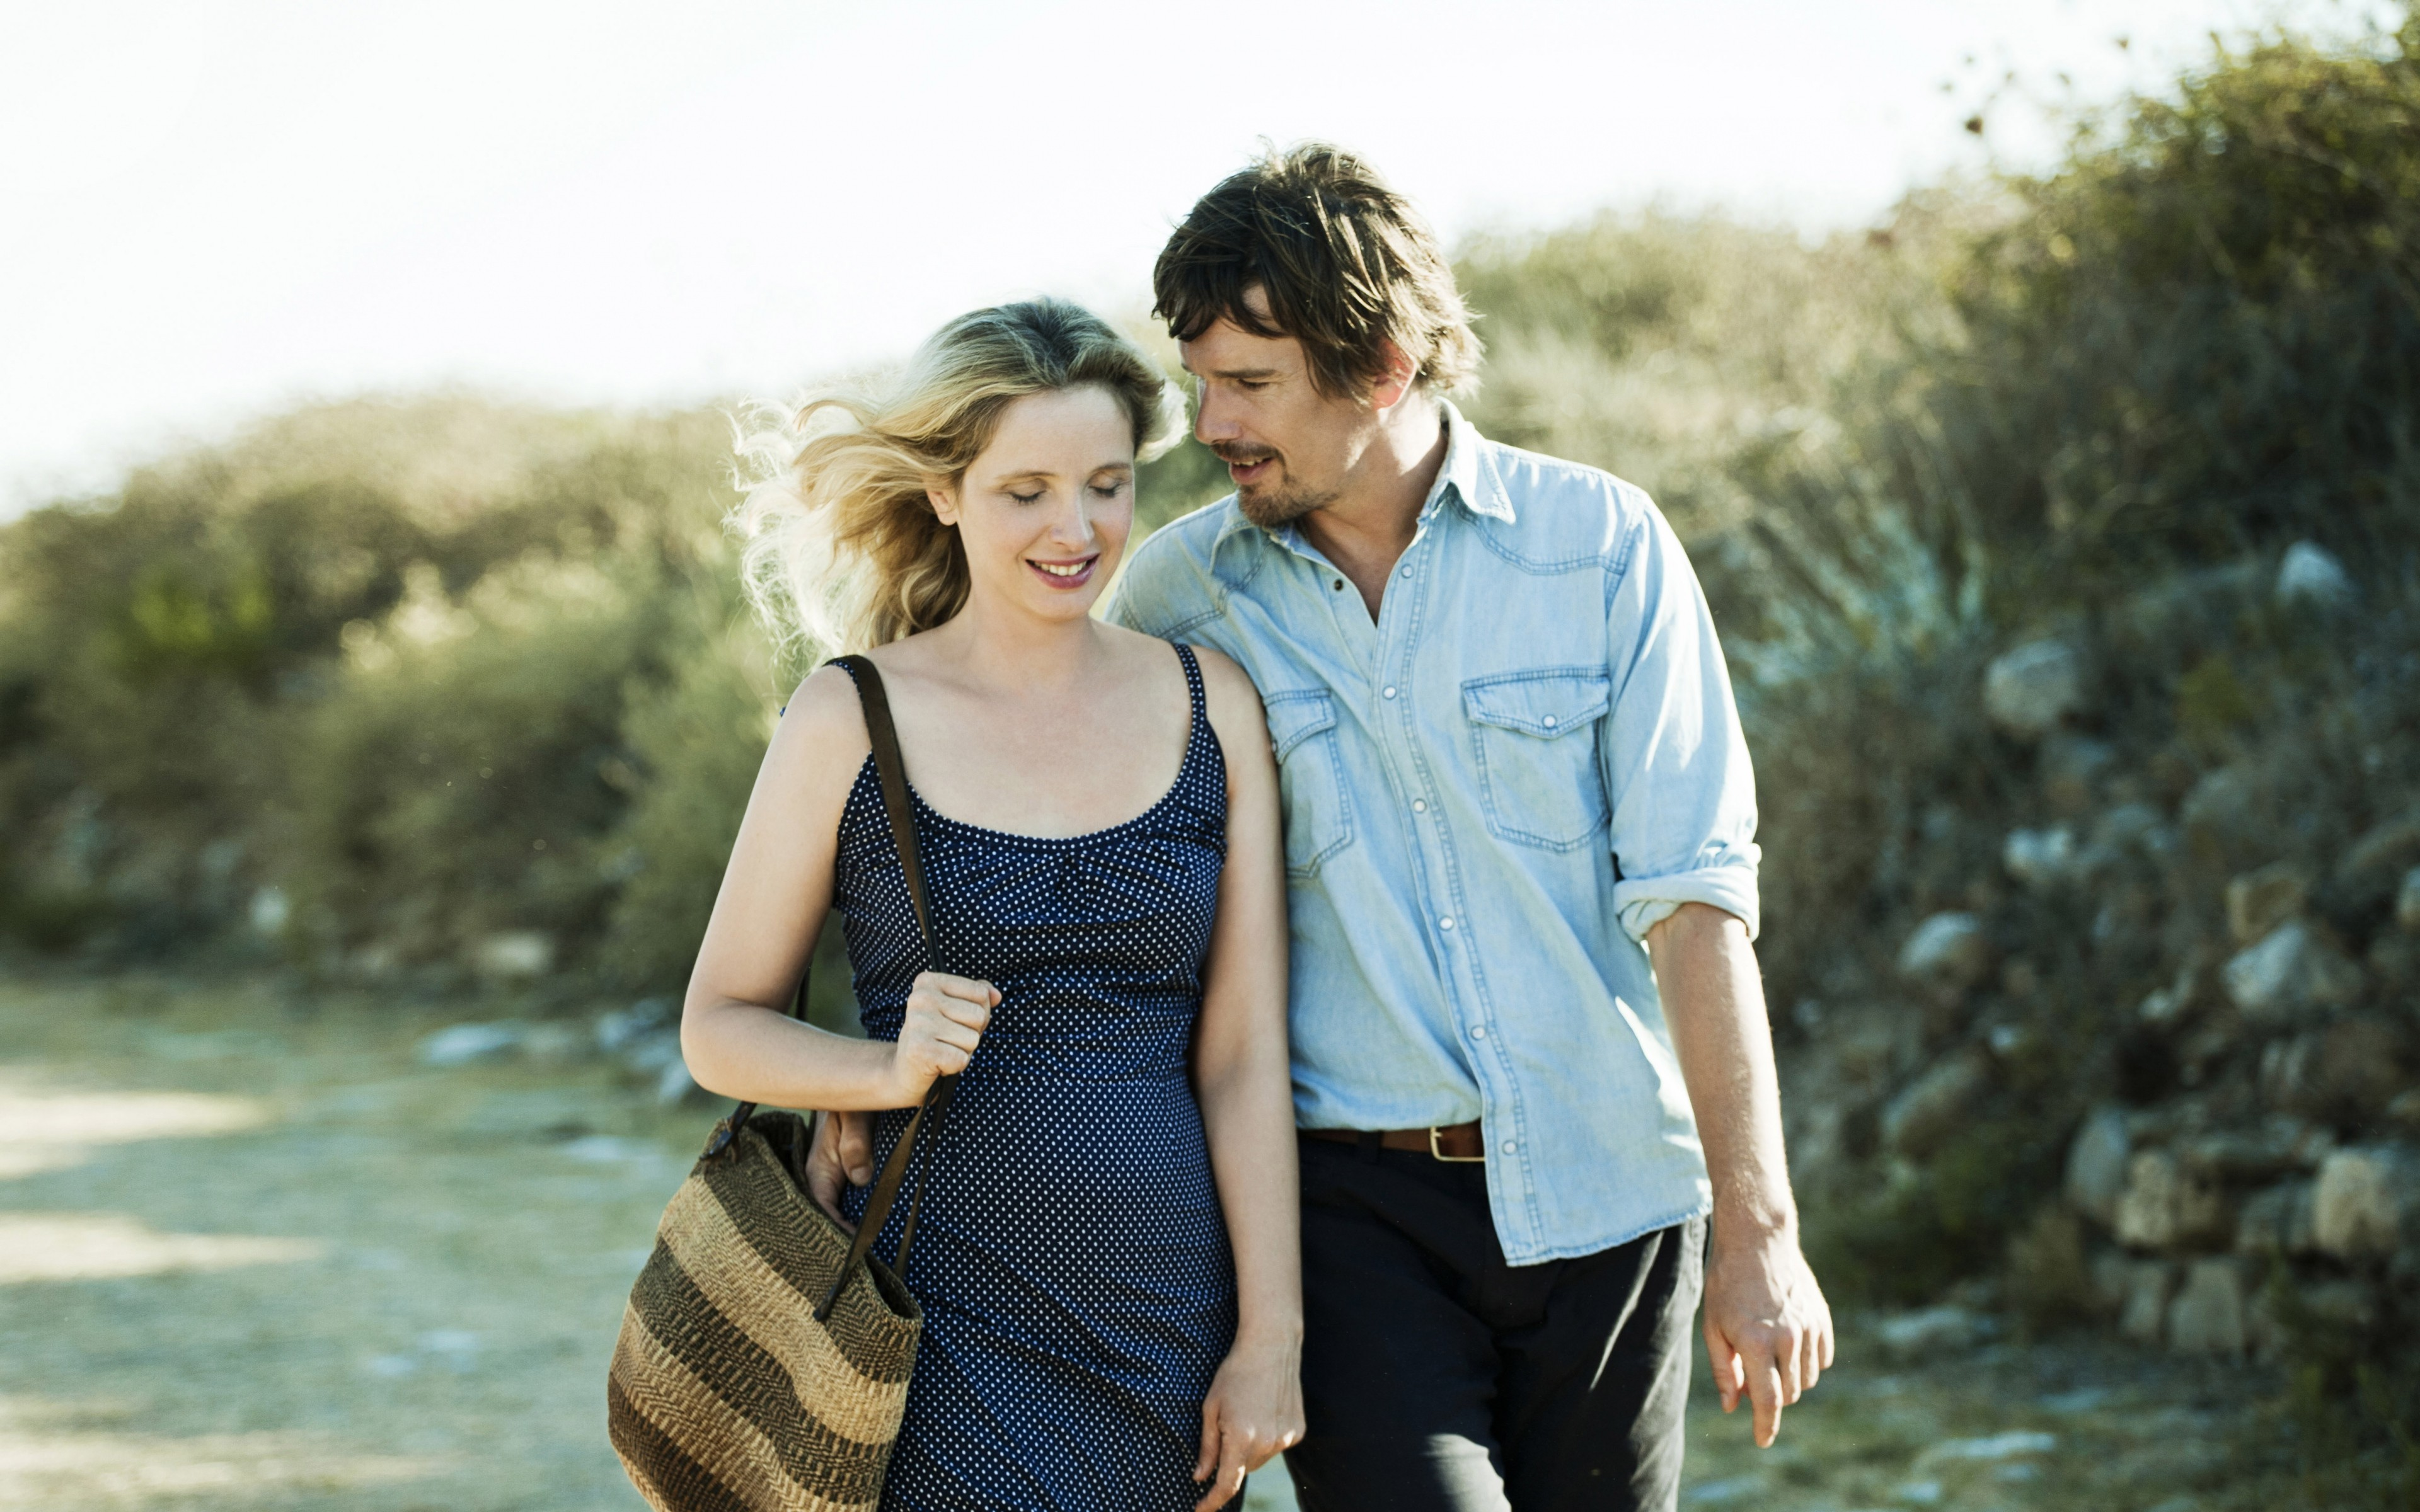 Before Midnight 4k Ultra HD Wallpaper Background Image 3840x2400